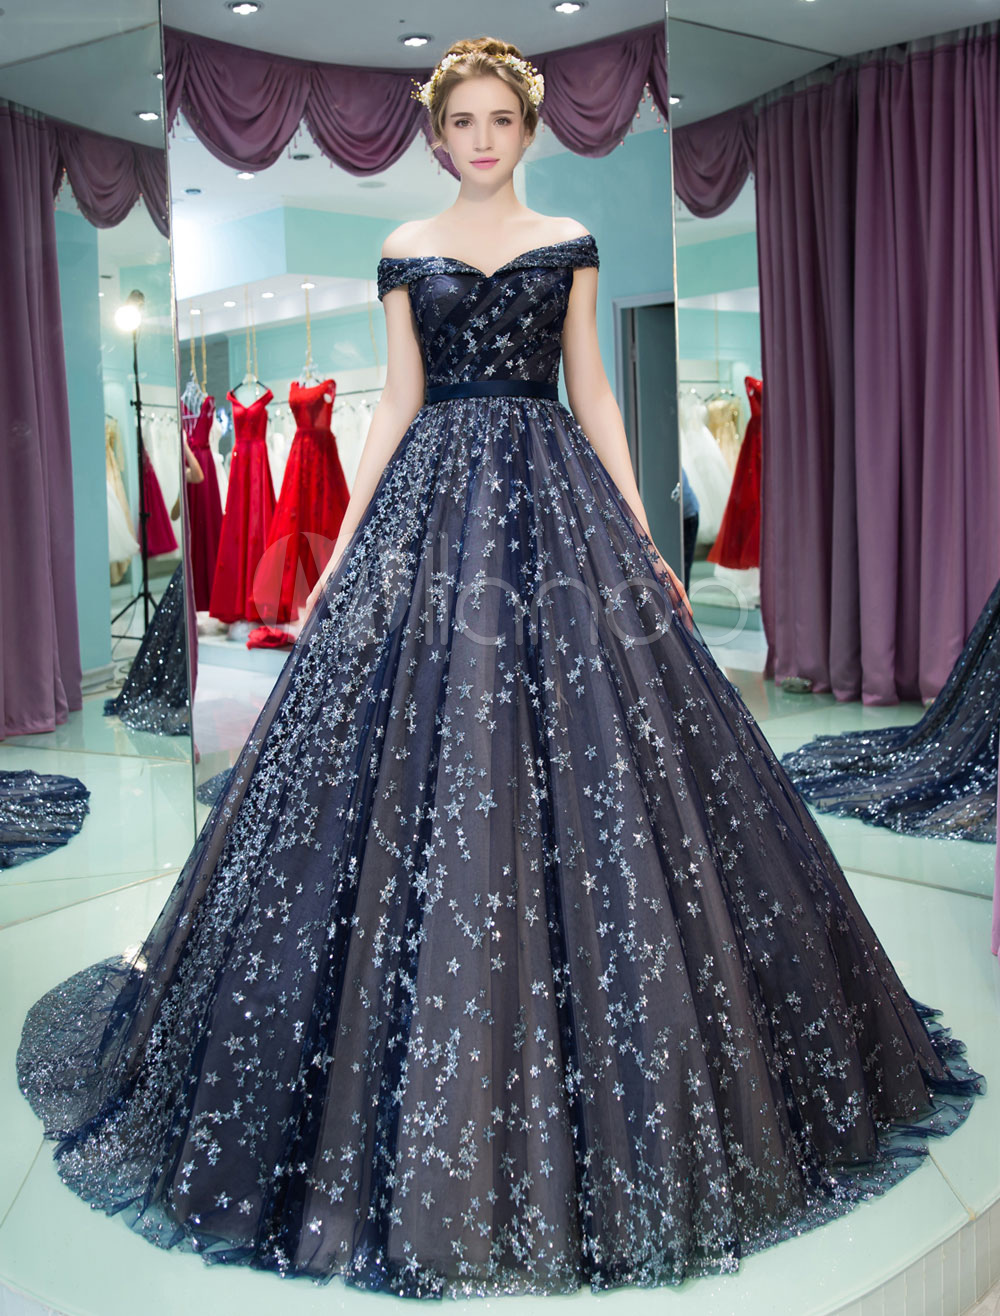 Sequin Quinceanera Dresses Princess Luxury Off The Shoulder Glitter Stars Dark Navy Pageant Dress With Train